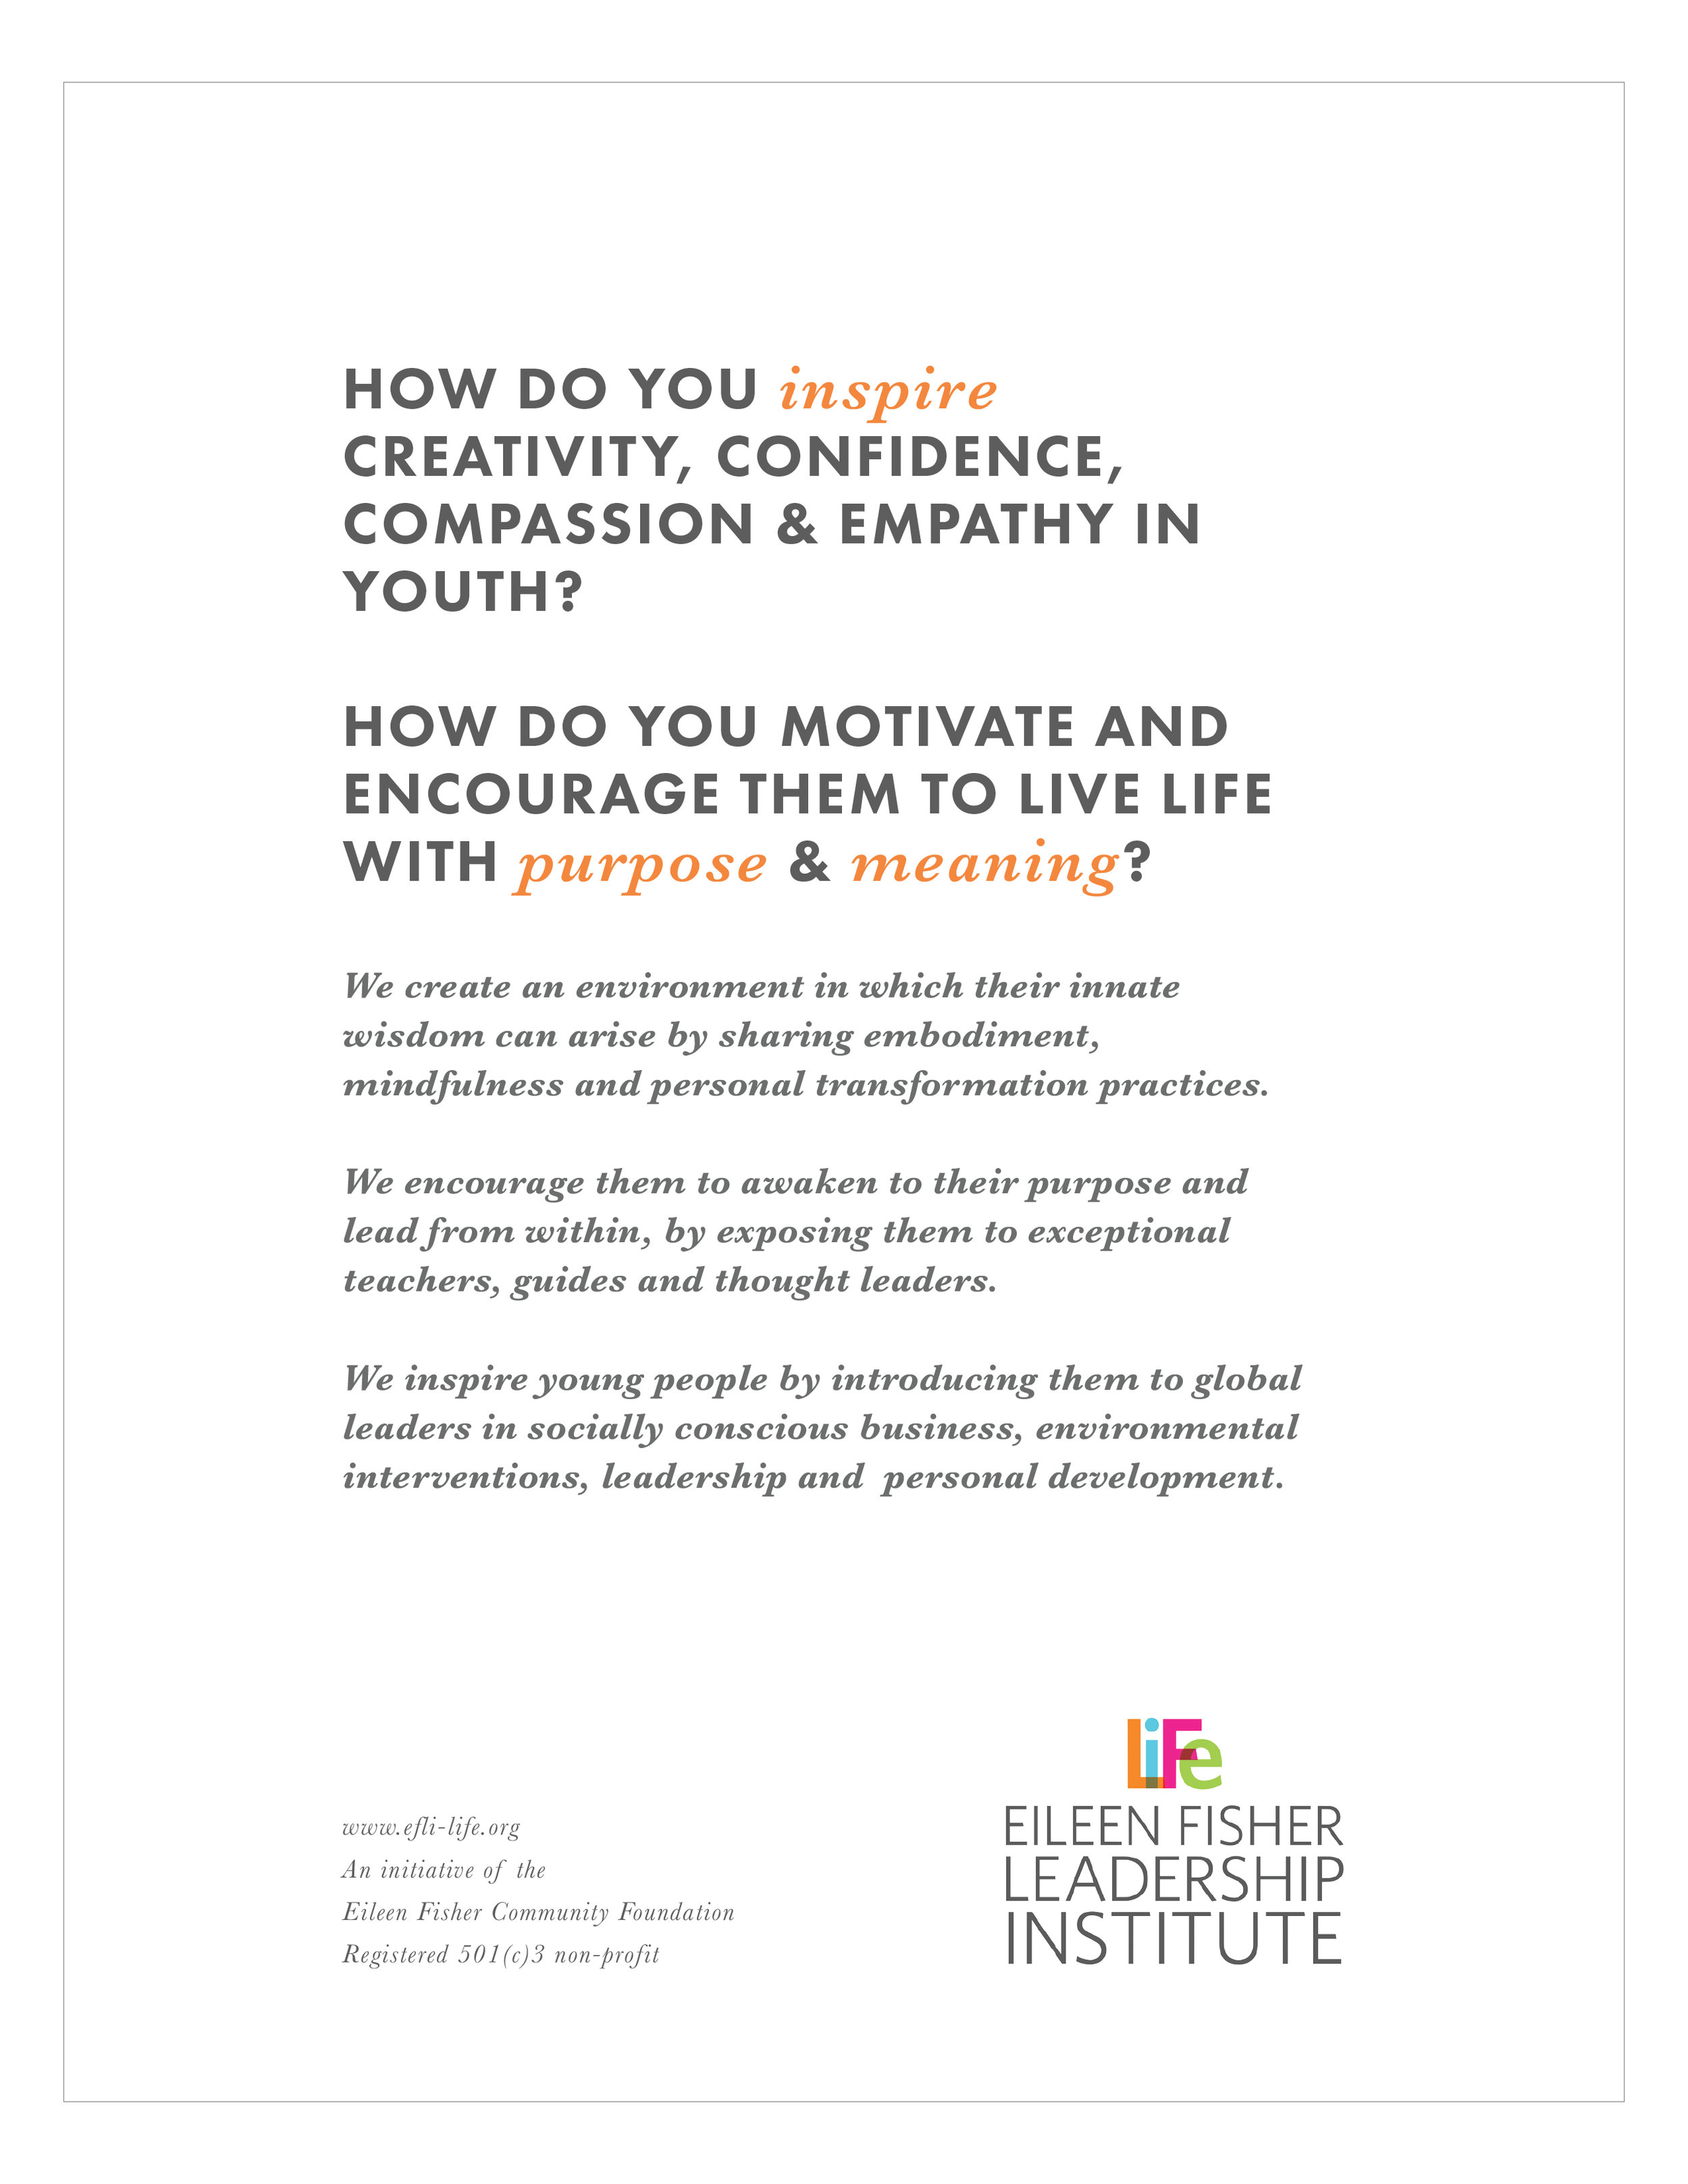 case for support, november 2016 - Sample pages from the Eileen Fisher Leadership Institute's 2016 Case for Support. Shared with potential donors and key stakeholders.LeFT: Cover Page